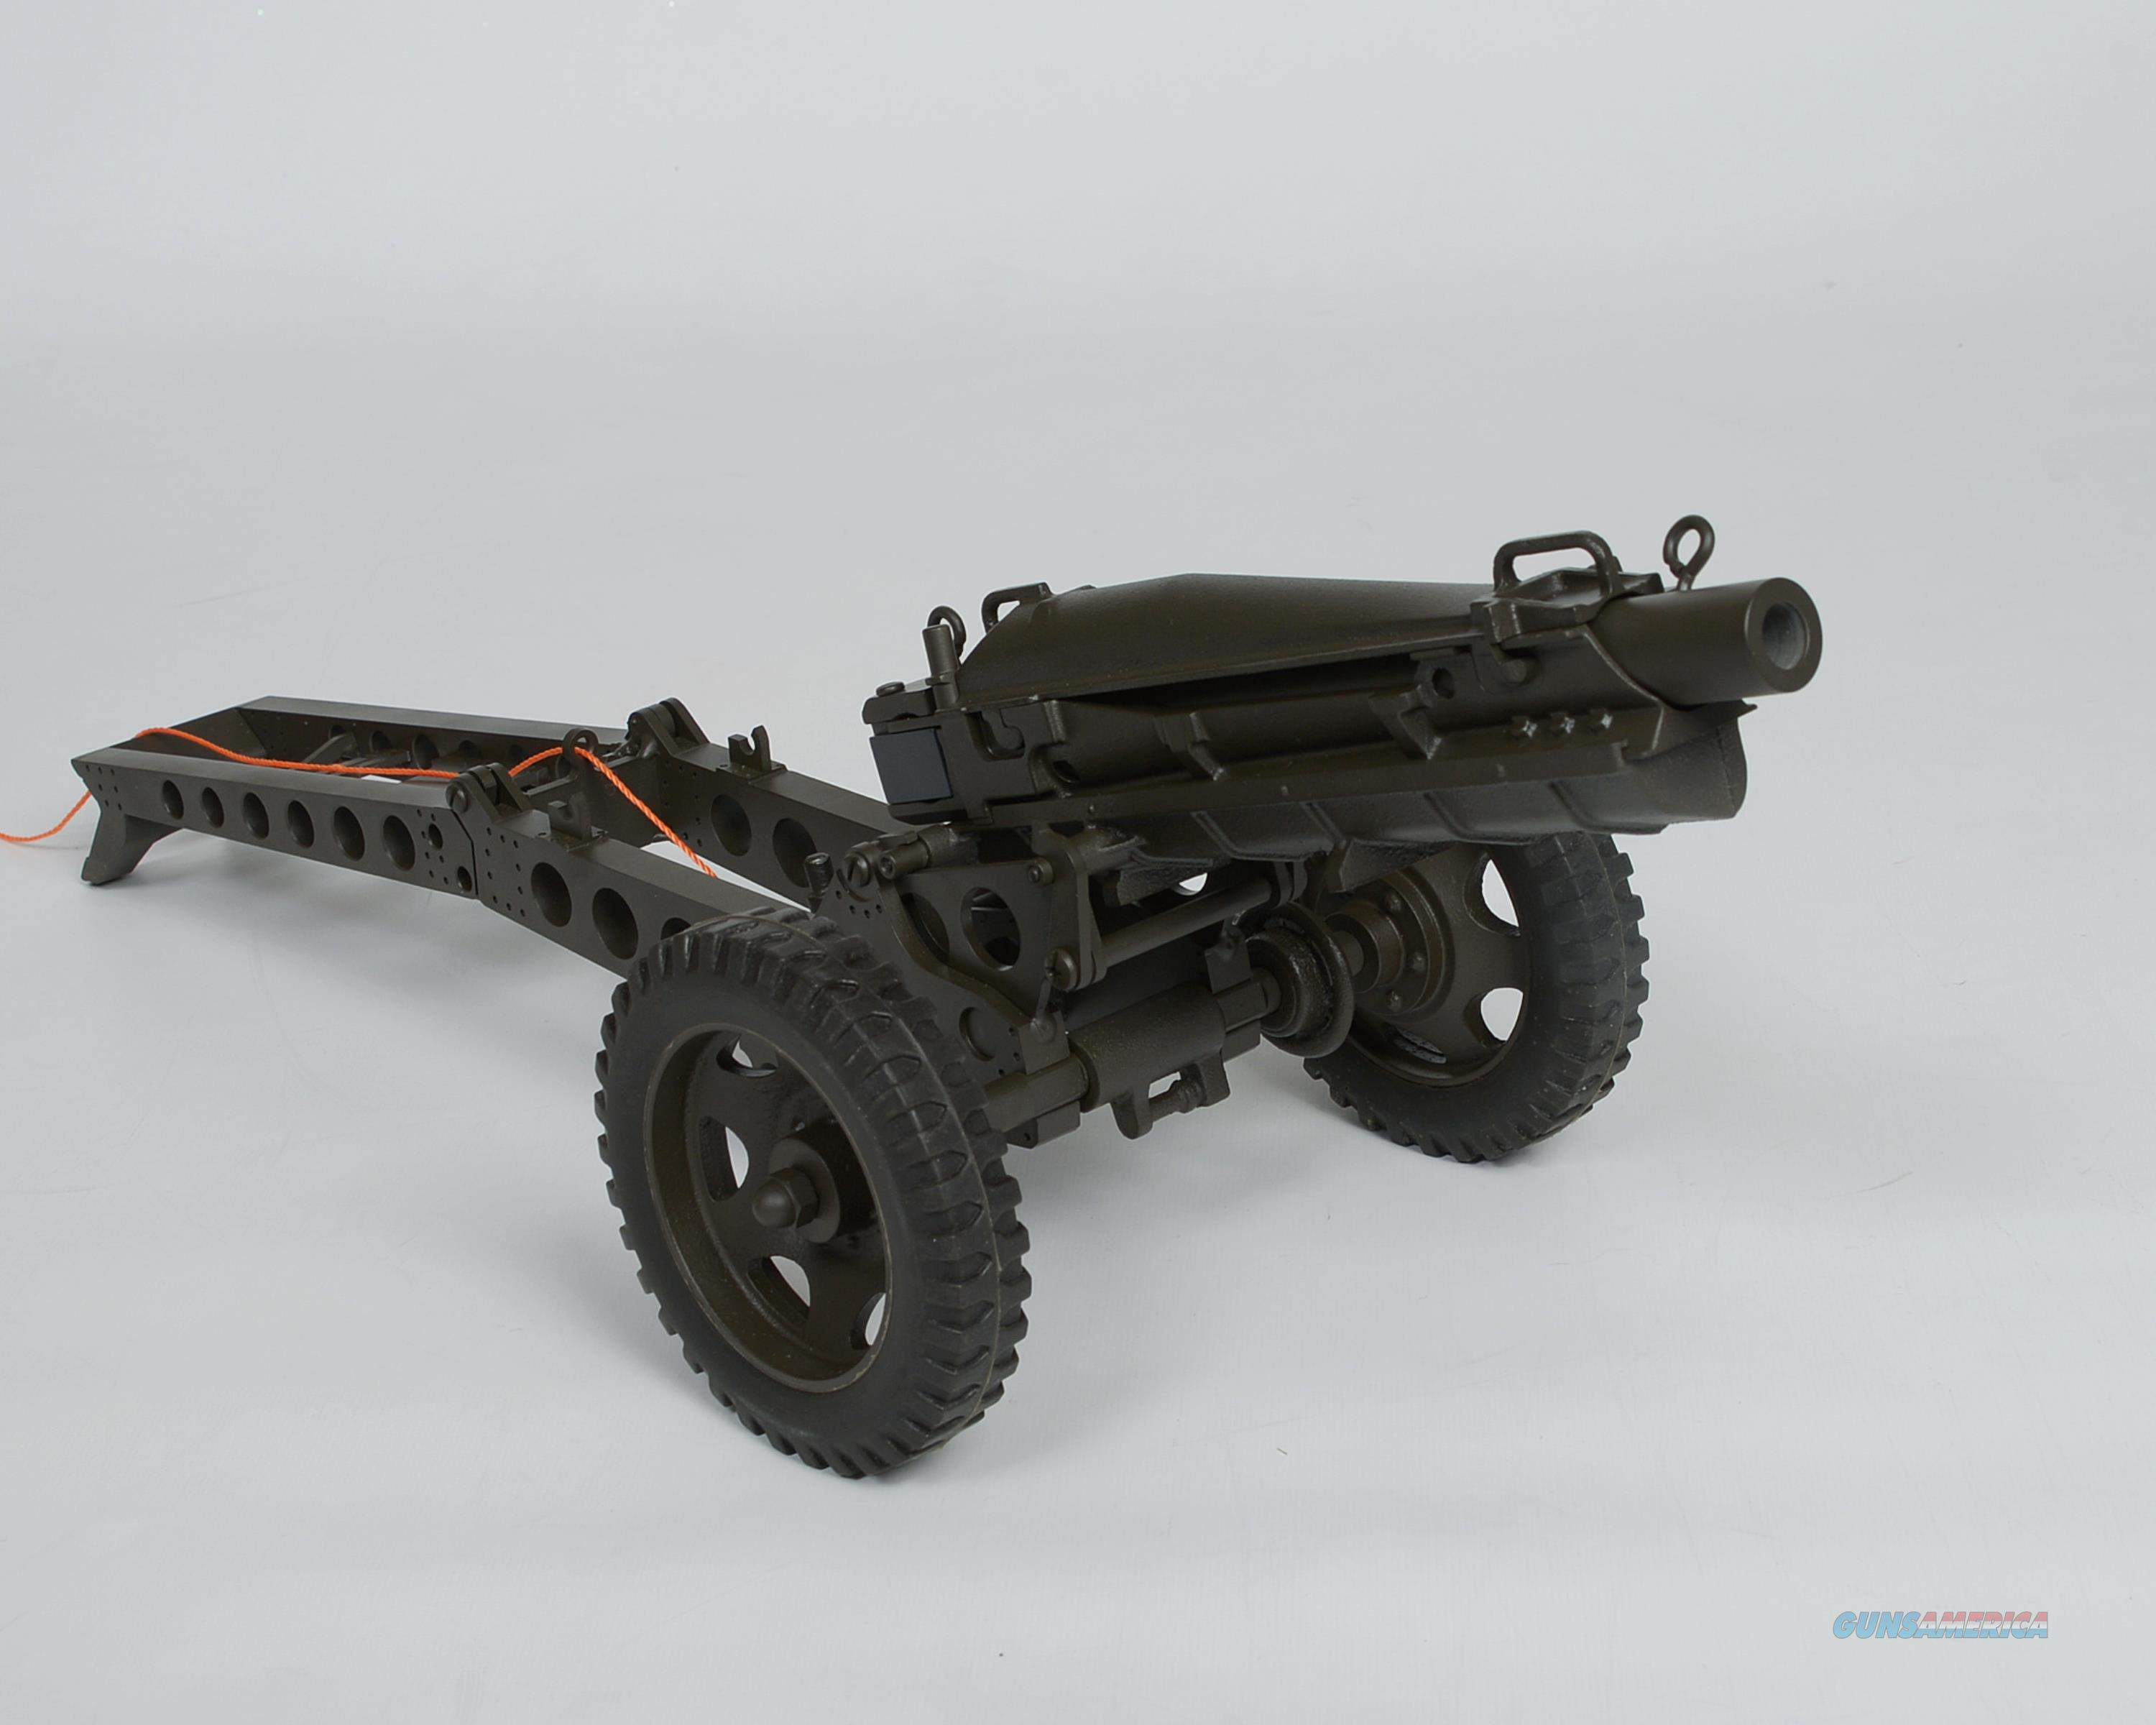 1/6 Scale Model 75mm Pack Howitzer Signal Cannon  Guns > Rifles > Cannons > Modern Replica